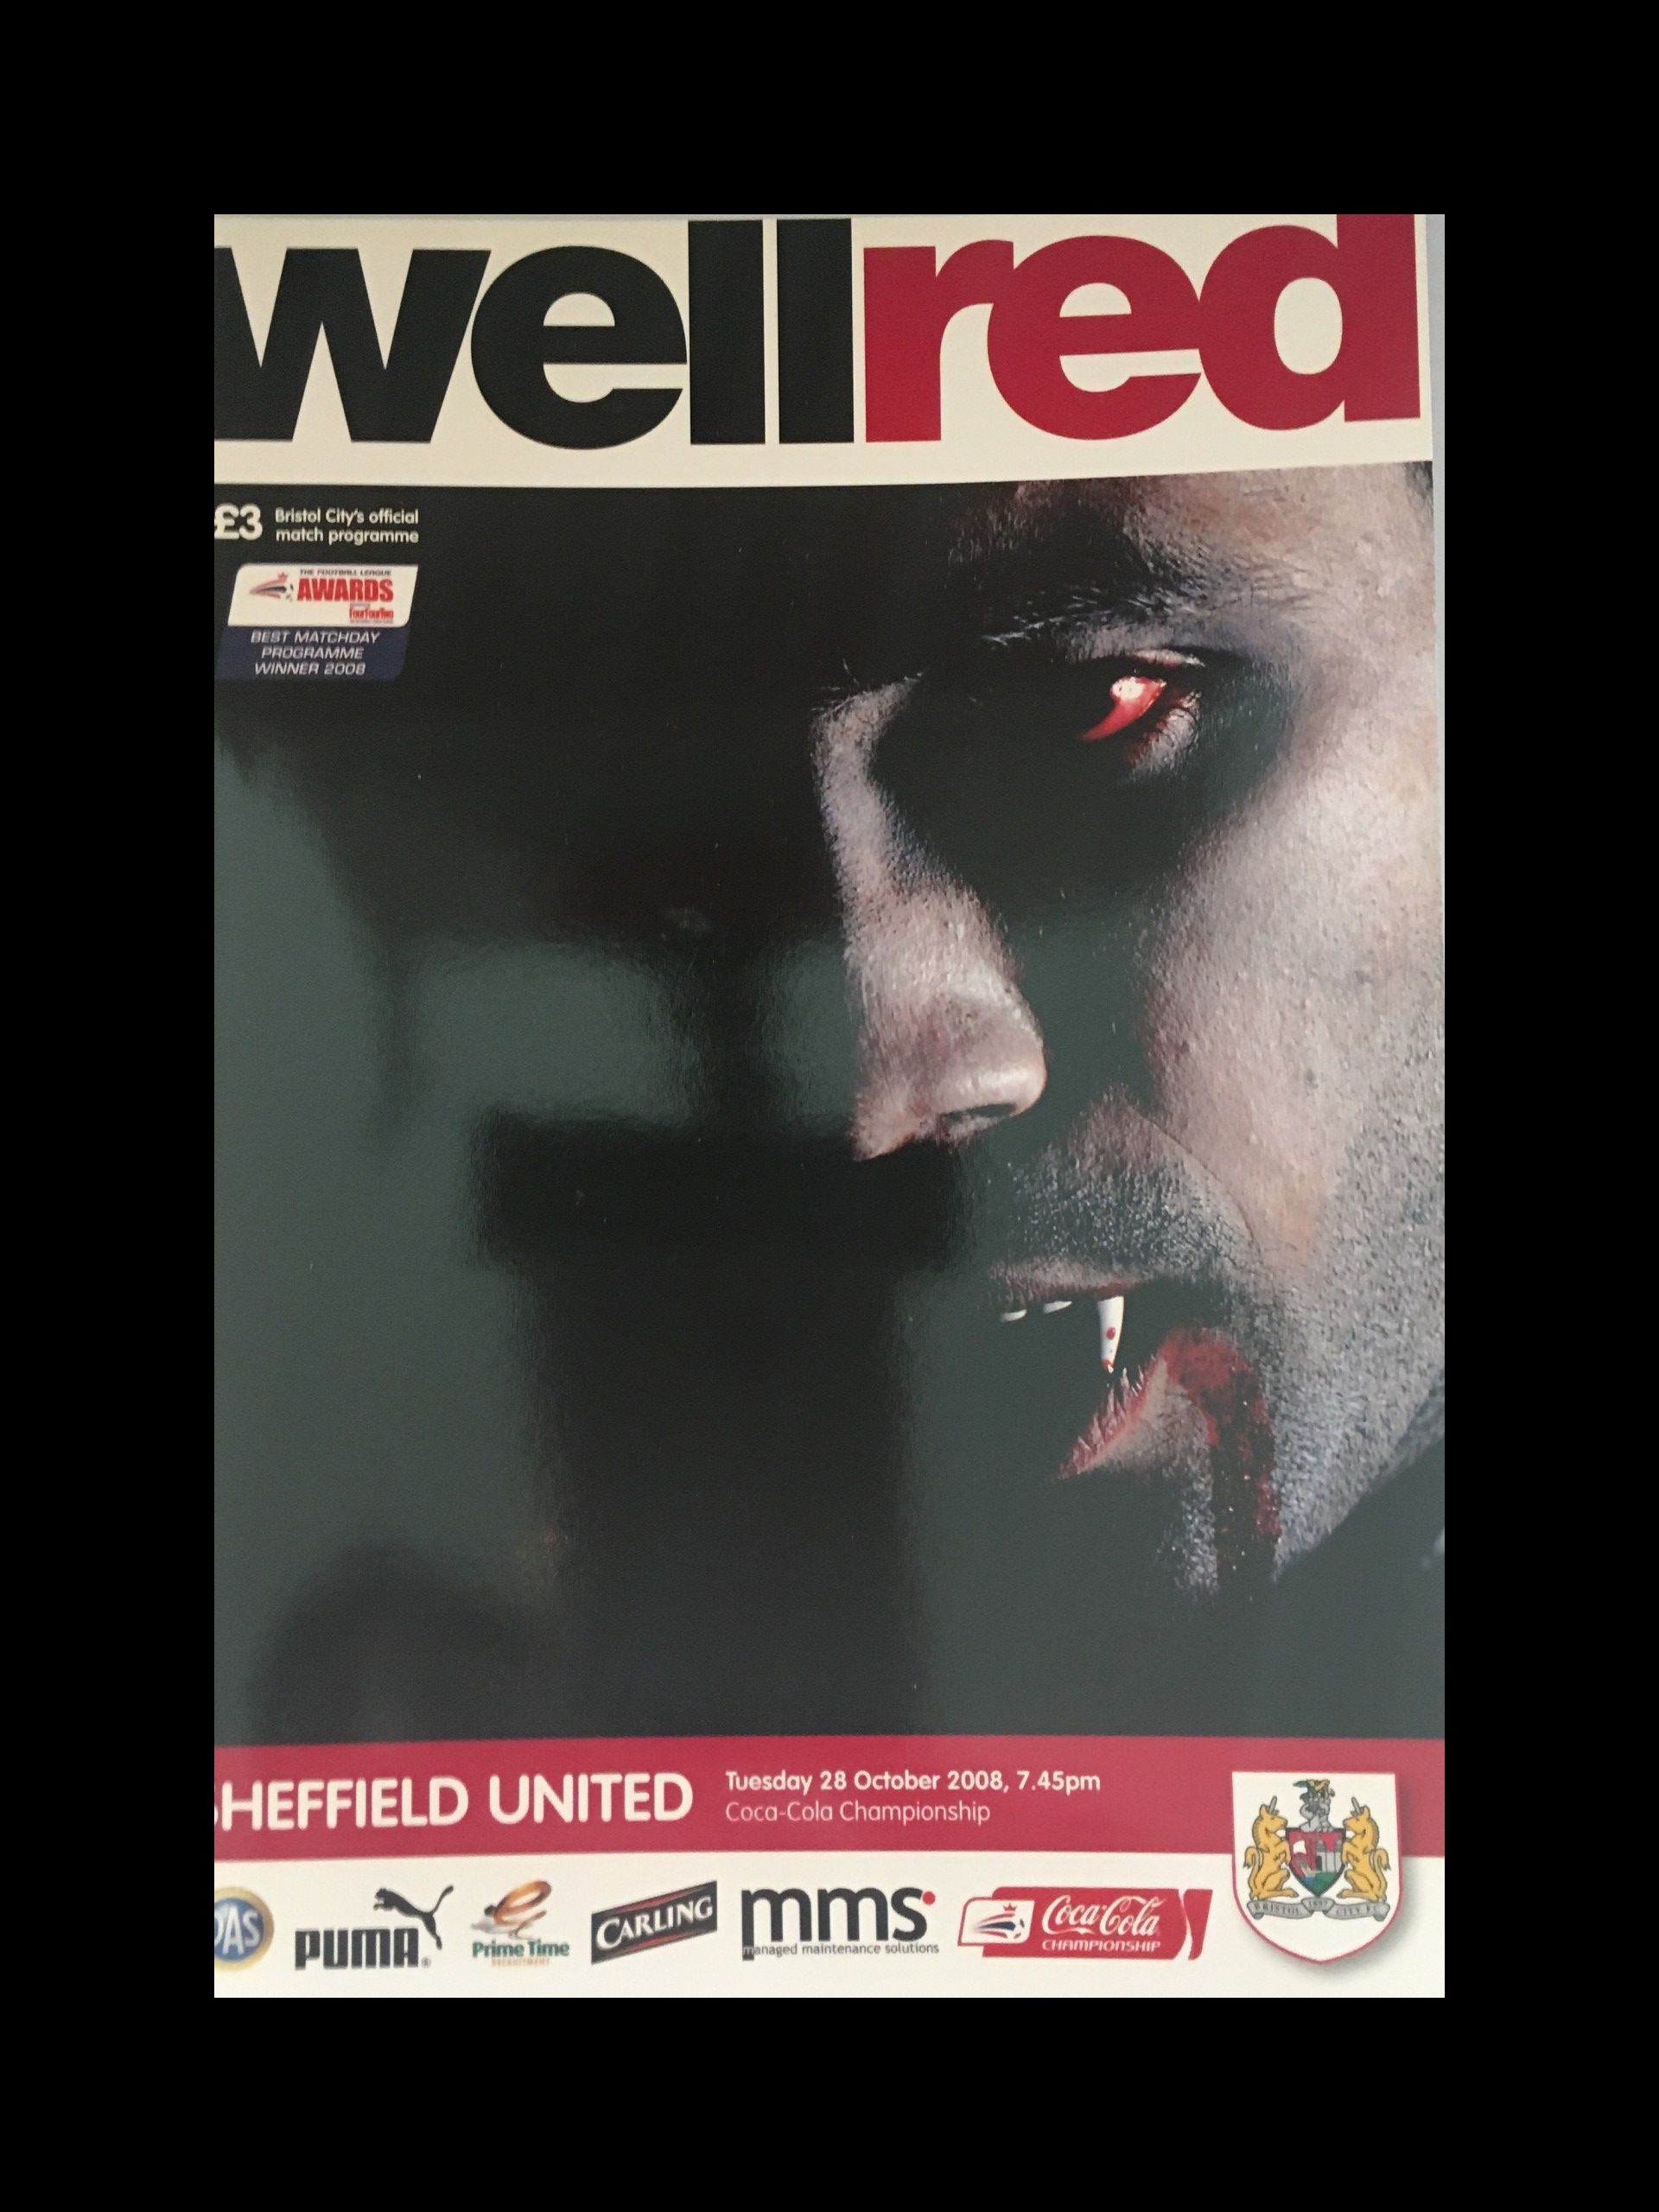 Bristol City v Sheffield United 16-08-2008 Programme